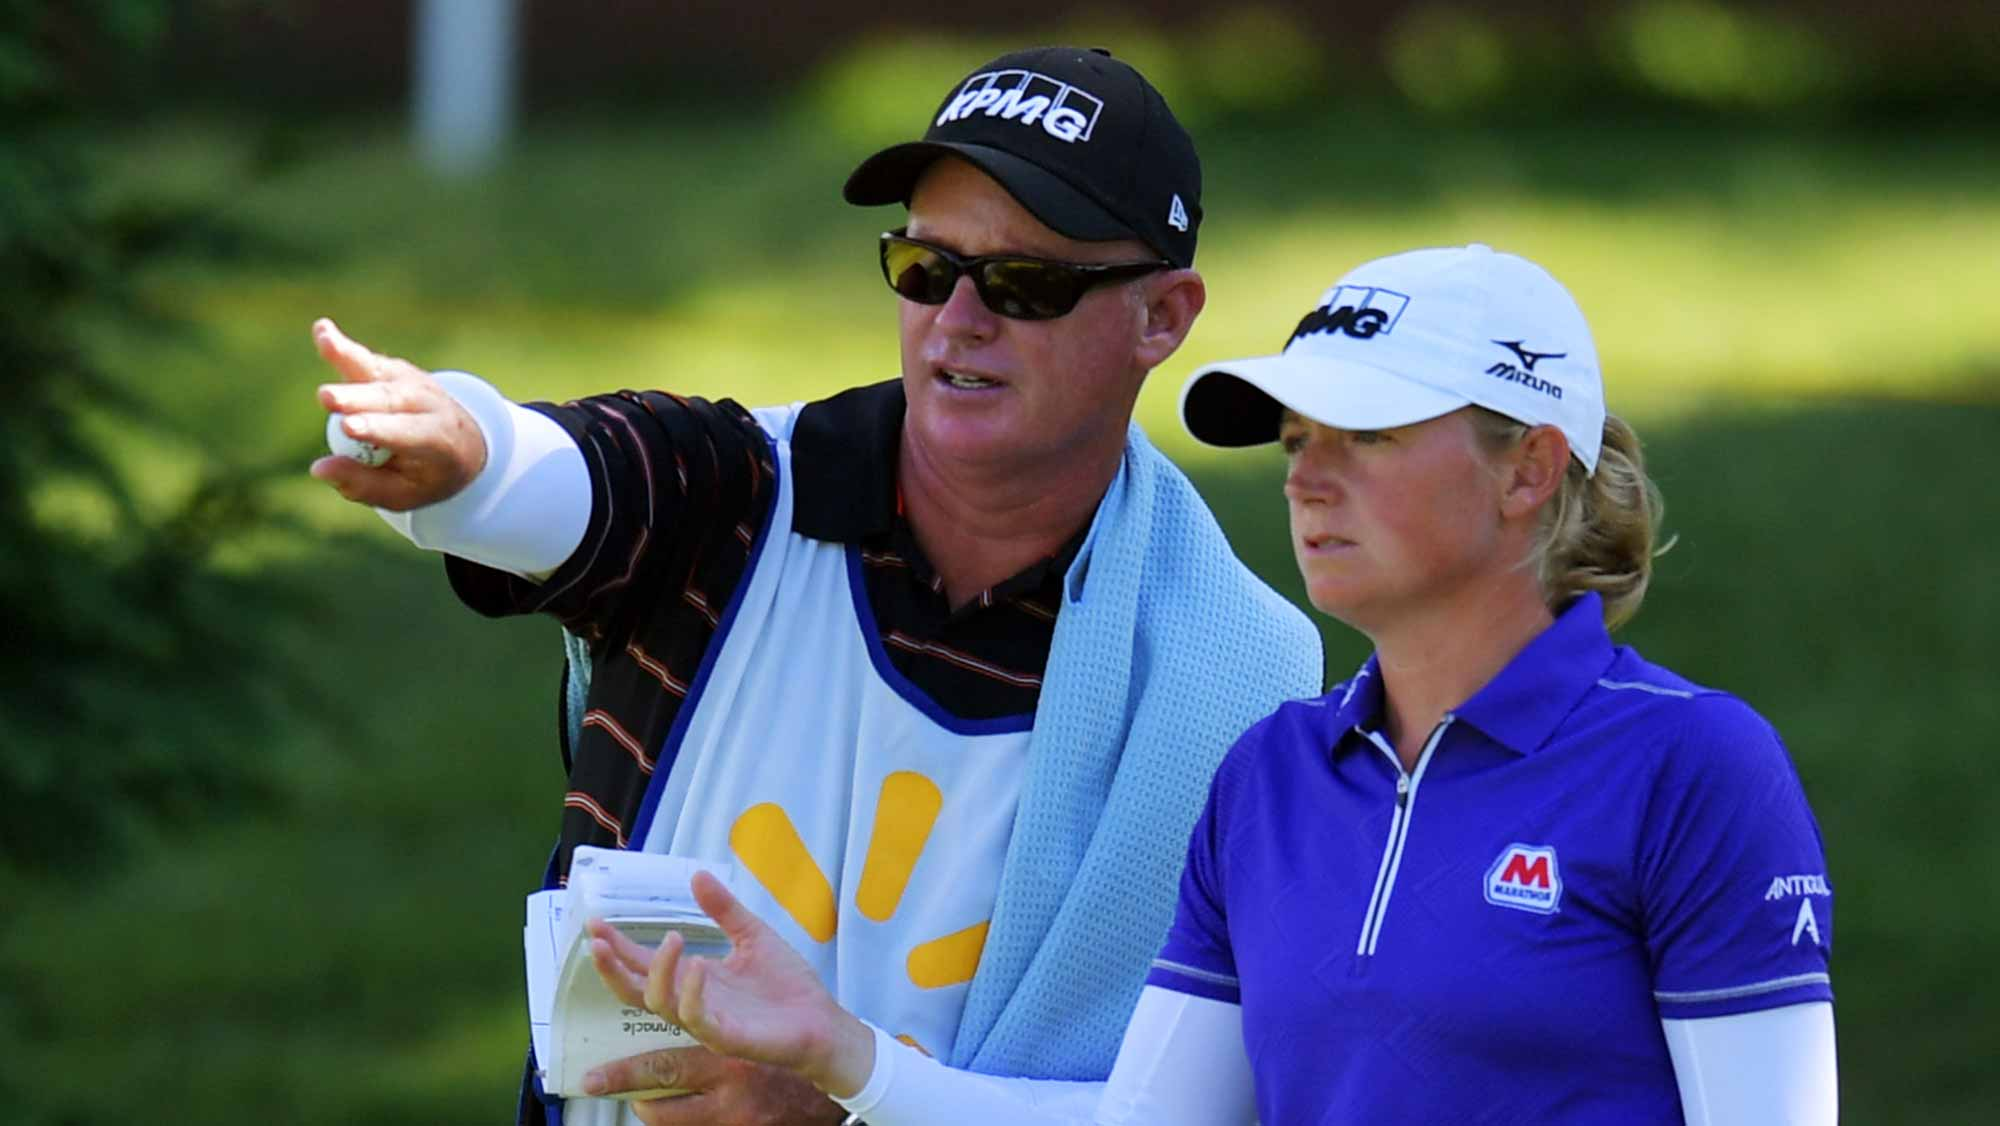 Stacy Lewis consults with her caddie on the 14th hole during the second round of the Walmart NW Arkansas Championship Presented by P&G